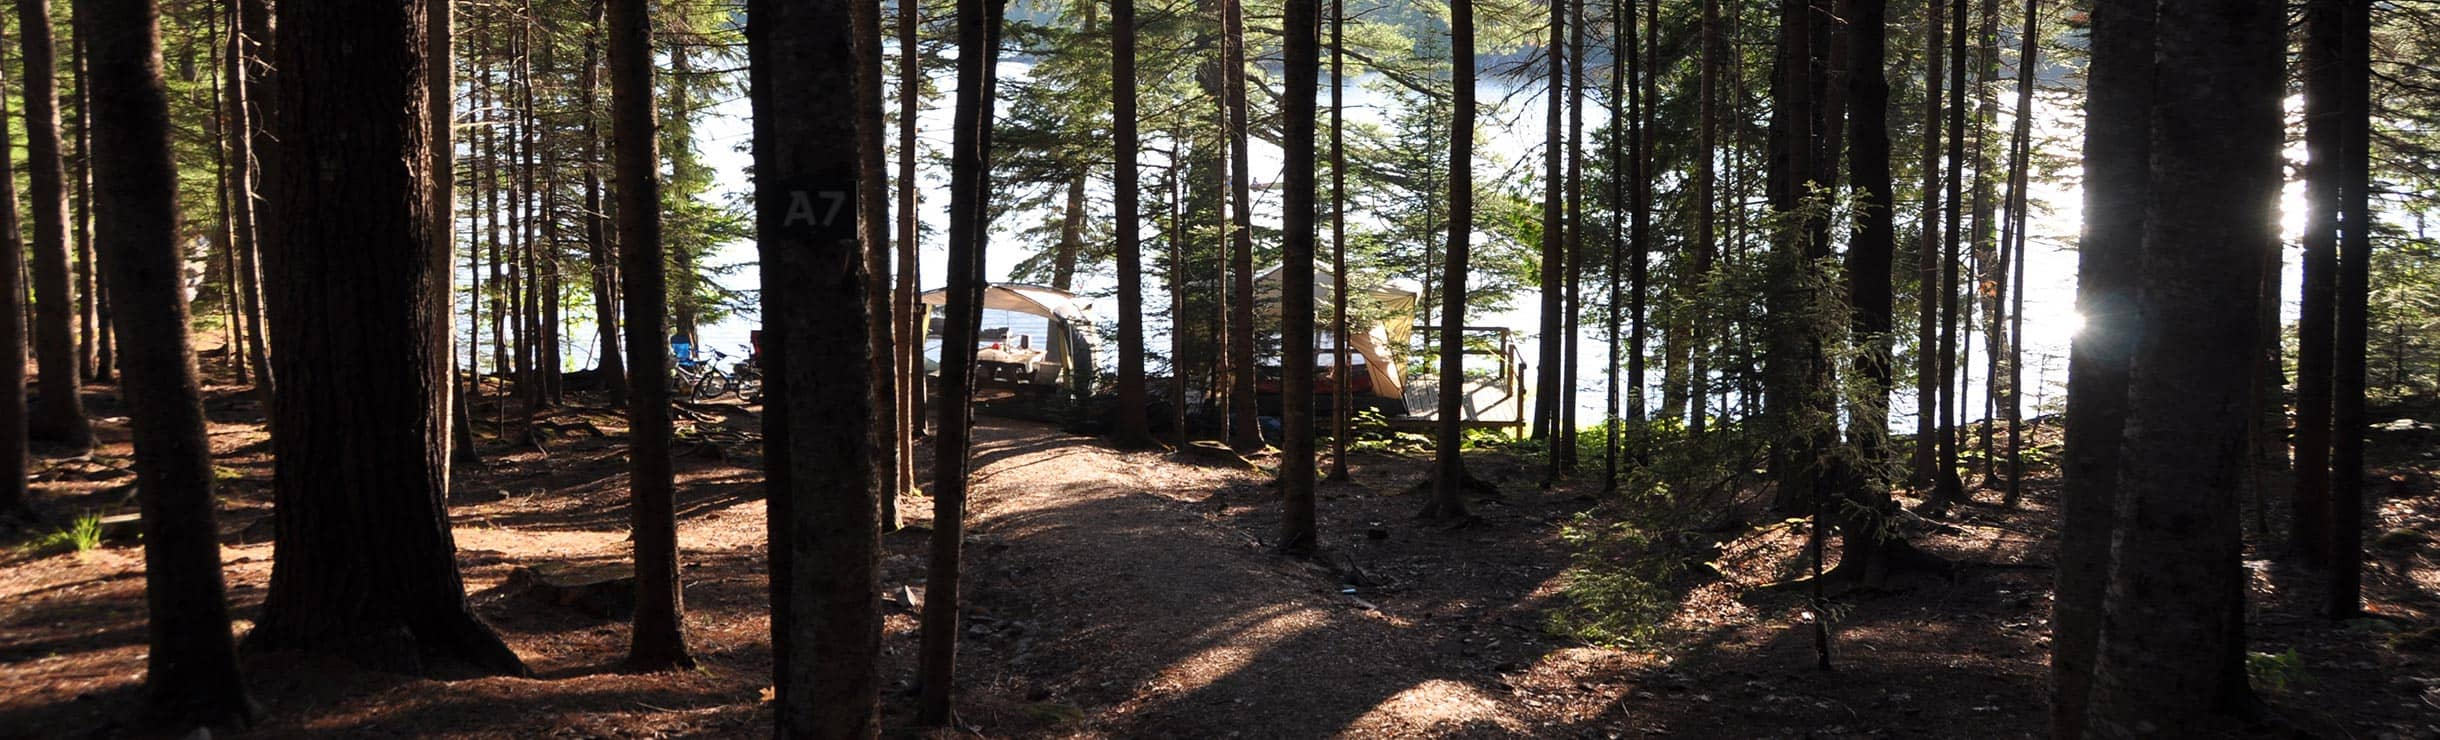 waterfront campsite surrounded by woods